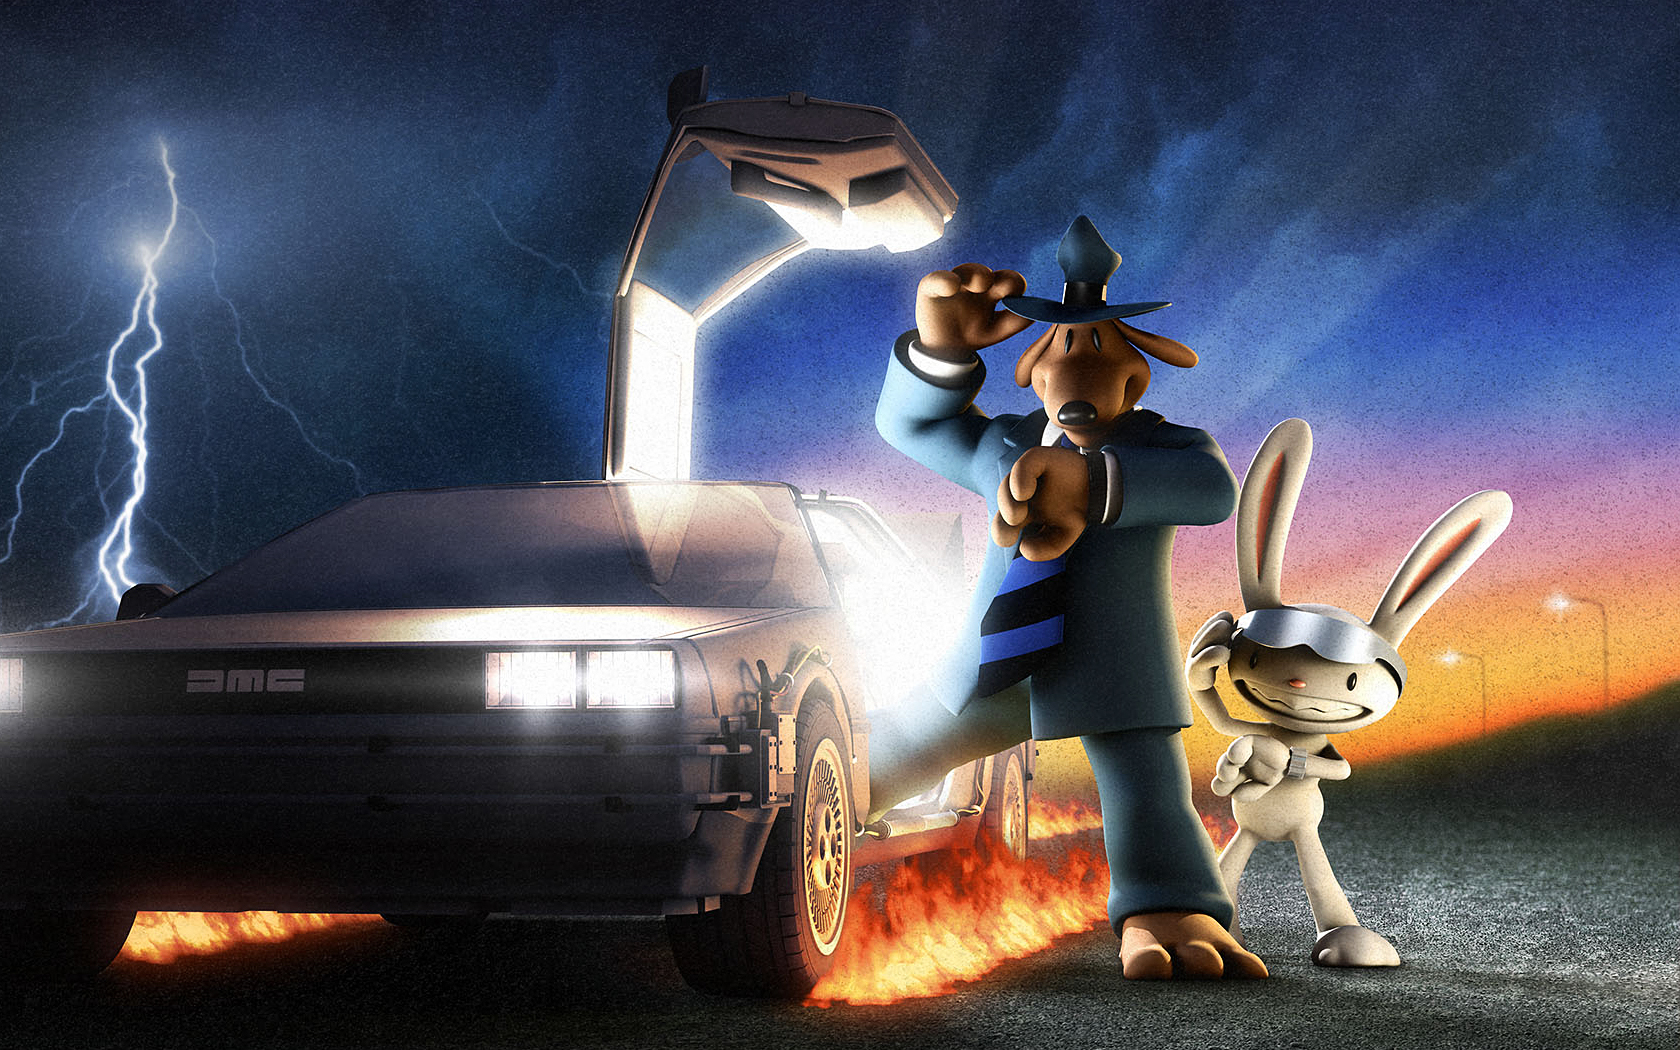 Back To The Future Iphone X Wallpaper Sam Amp Max Wallpaper And Background Image 1680x1050 Id